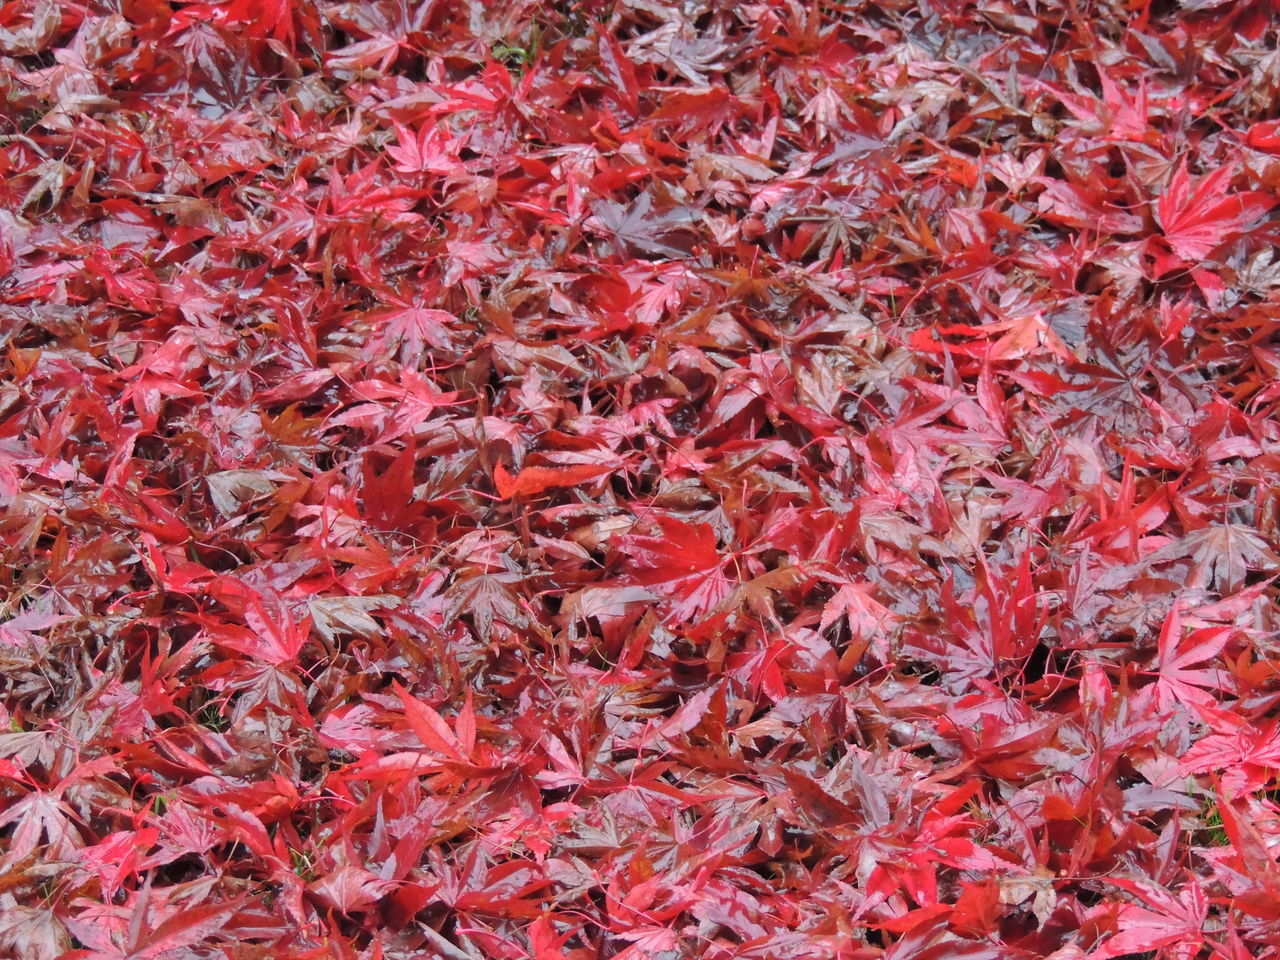 Autumn Autumn 2016 Autumn Collection Autumn Colors Autumn Colours Autumn Leafs Autumn Trees Autumnbeauty Autumn🍁🍁🍁 Backgrounds Close-up Day Full Frame Leafs Leafs Colors Leafs Photography Leafs 🍃 Leafs. Leafscape Leafseason Nature No People Outdoors Red Red Chili Pepper